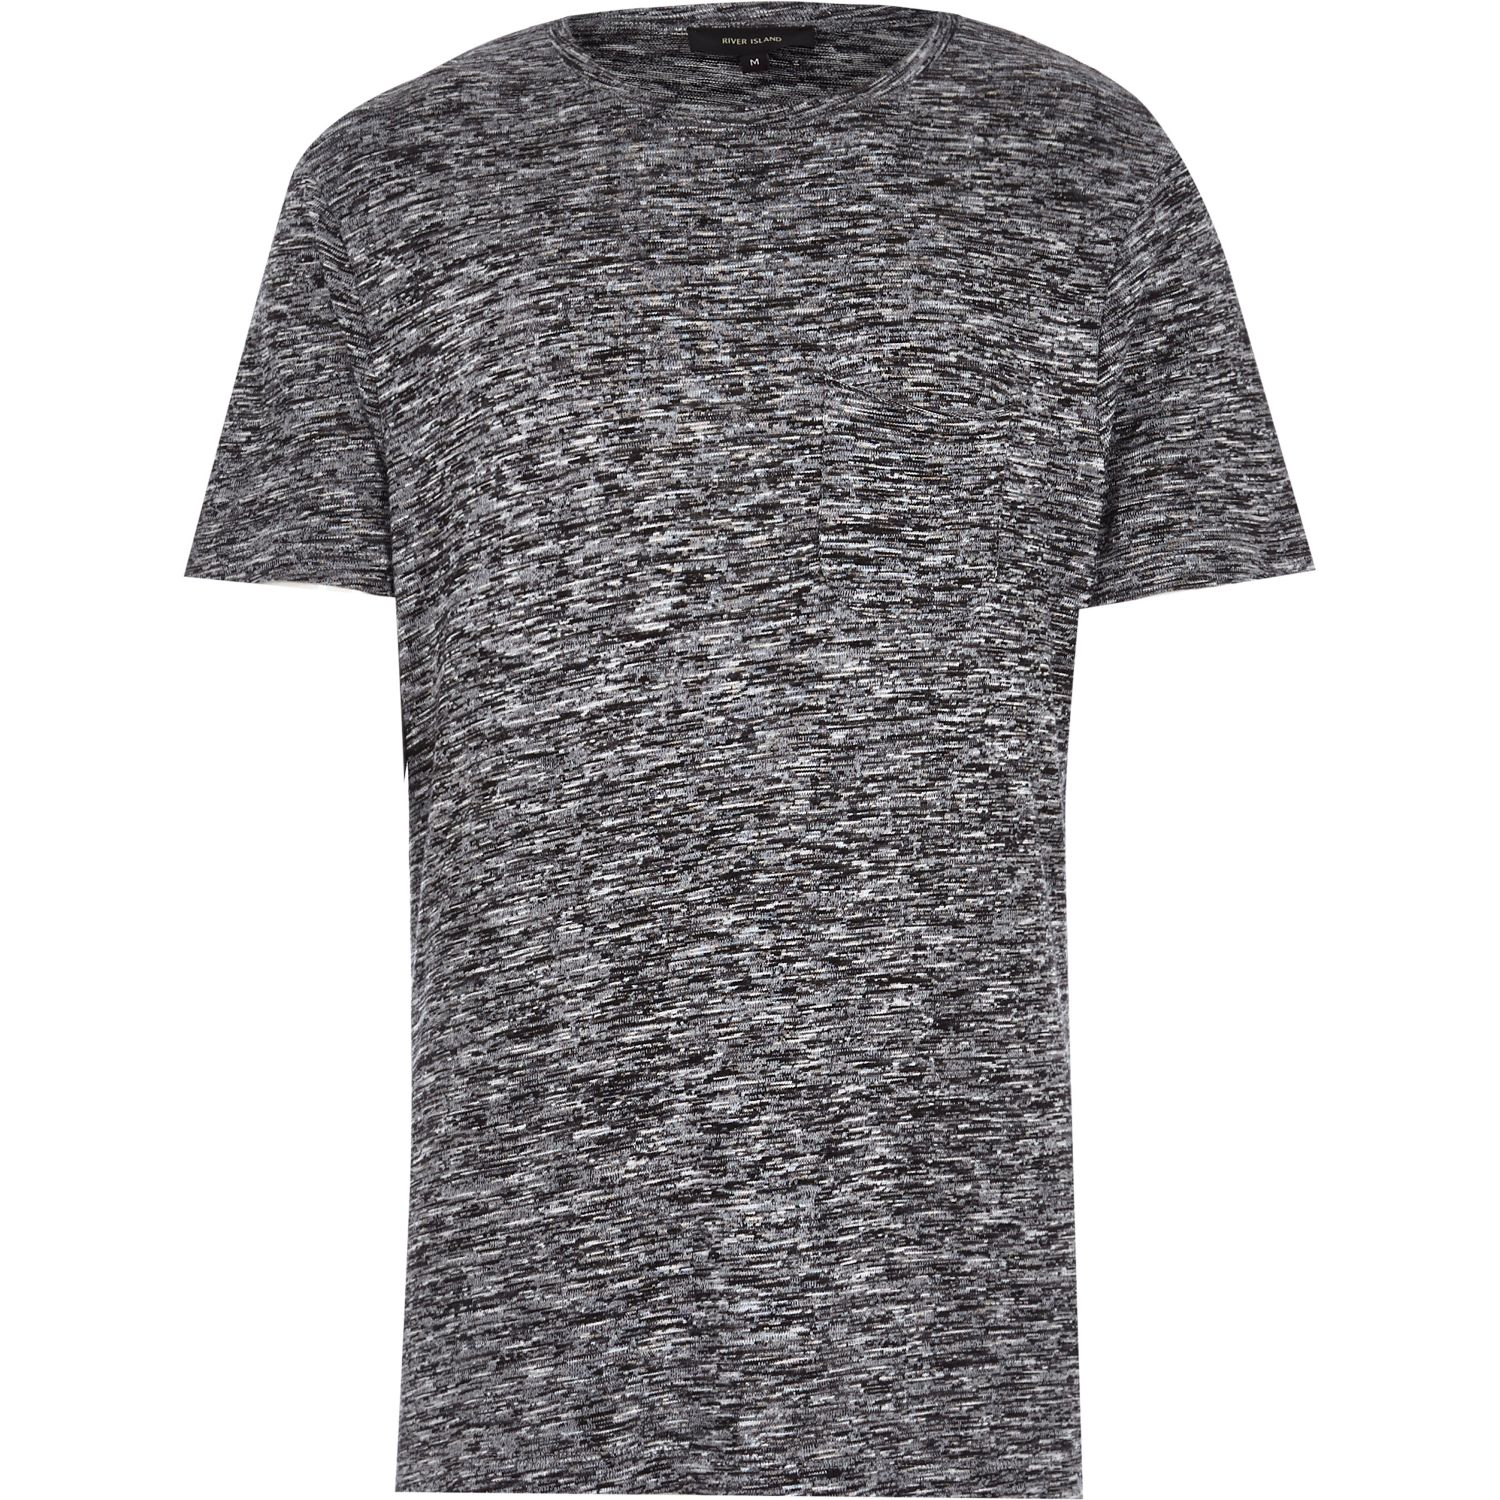 River island grey marl short sleeve t shirt in gray for for Grey marl t shirt